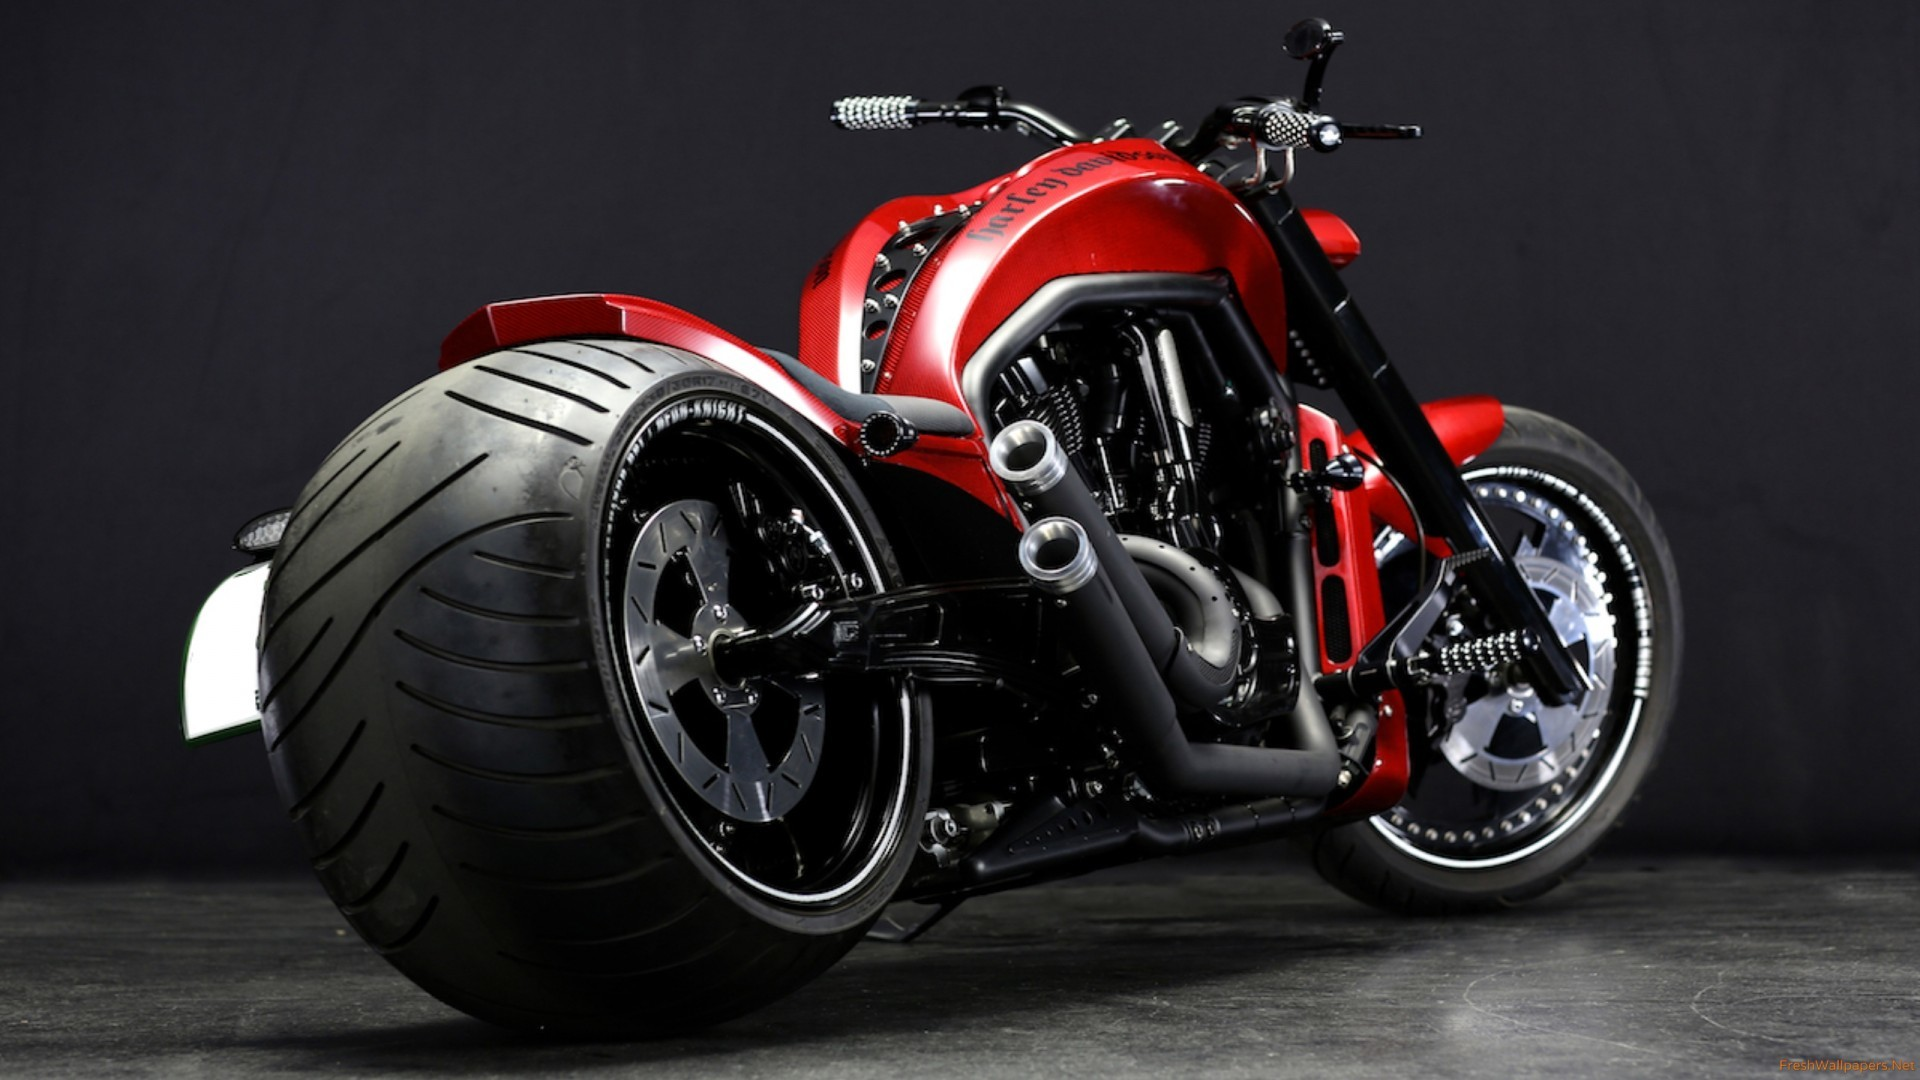 Harley Davidson Wallpapers 82 Background Pictures